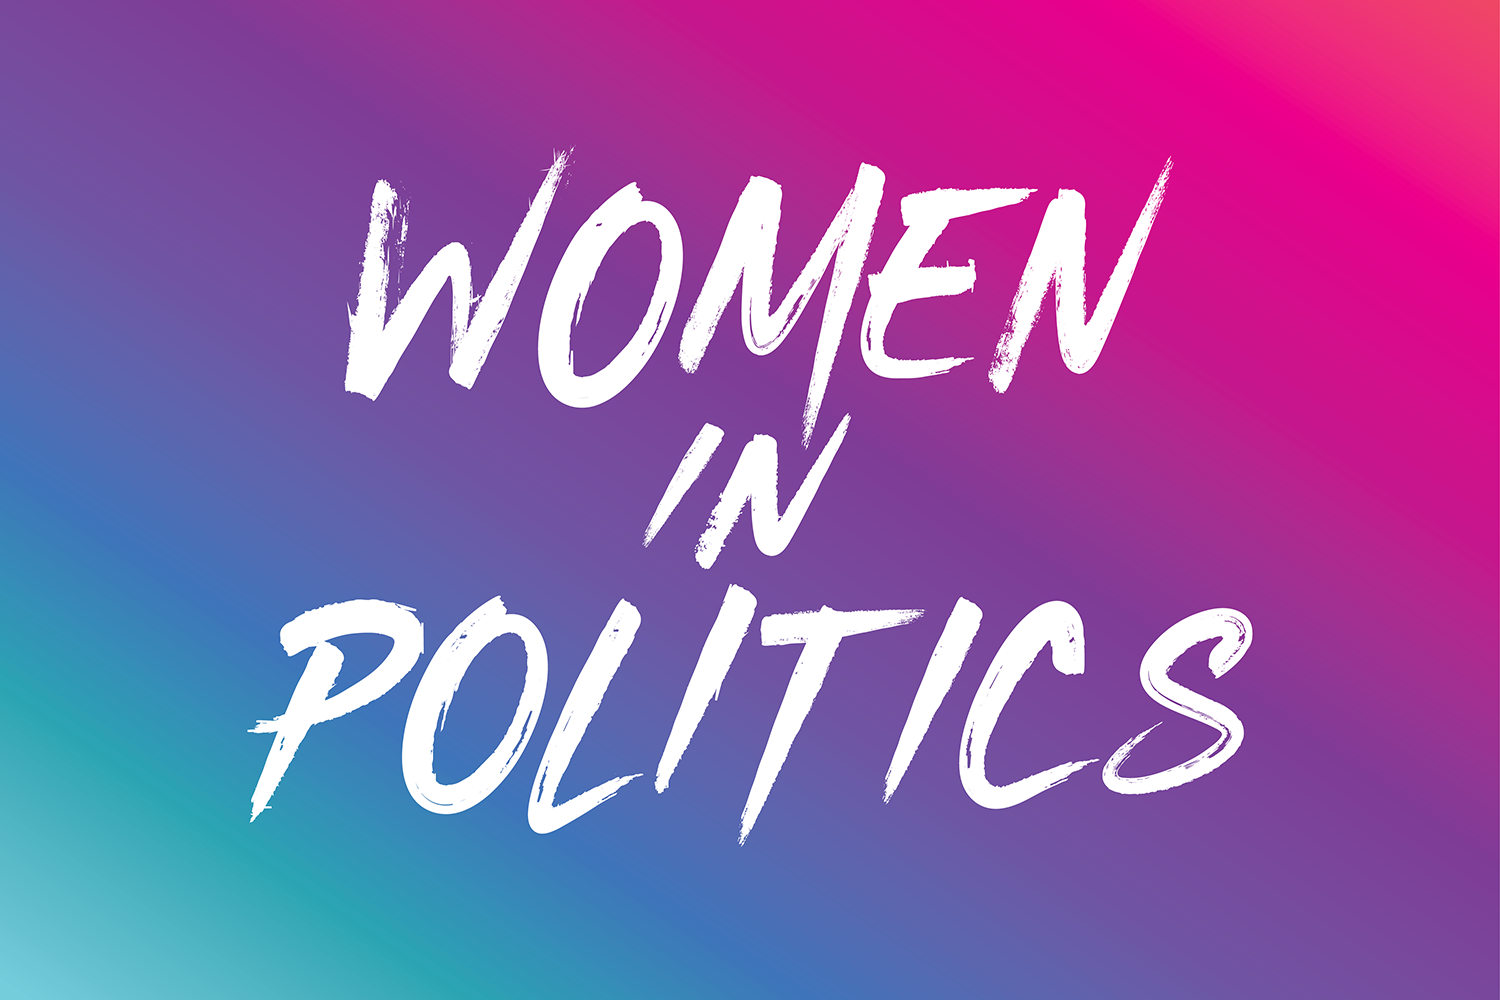 FP-Qatar-VD-Women-in-Politics-homepage-1500x1000-image-only